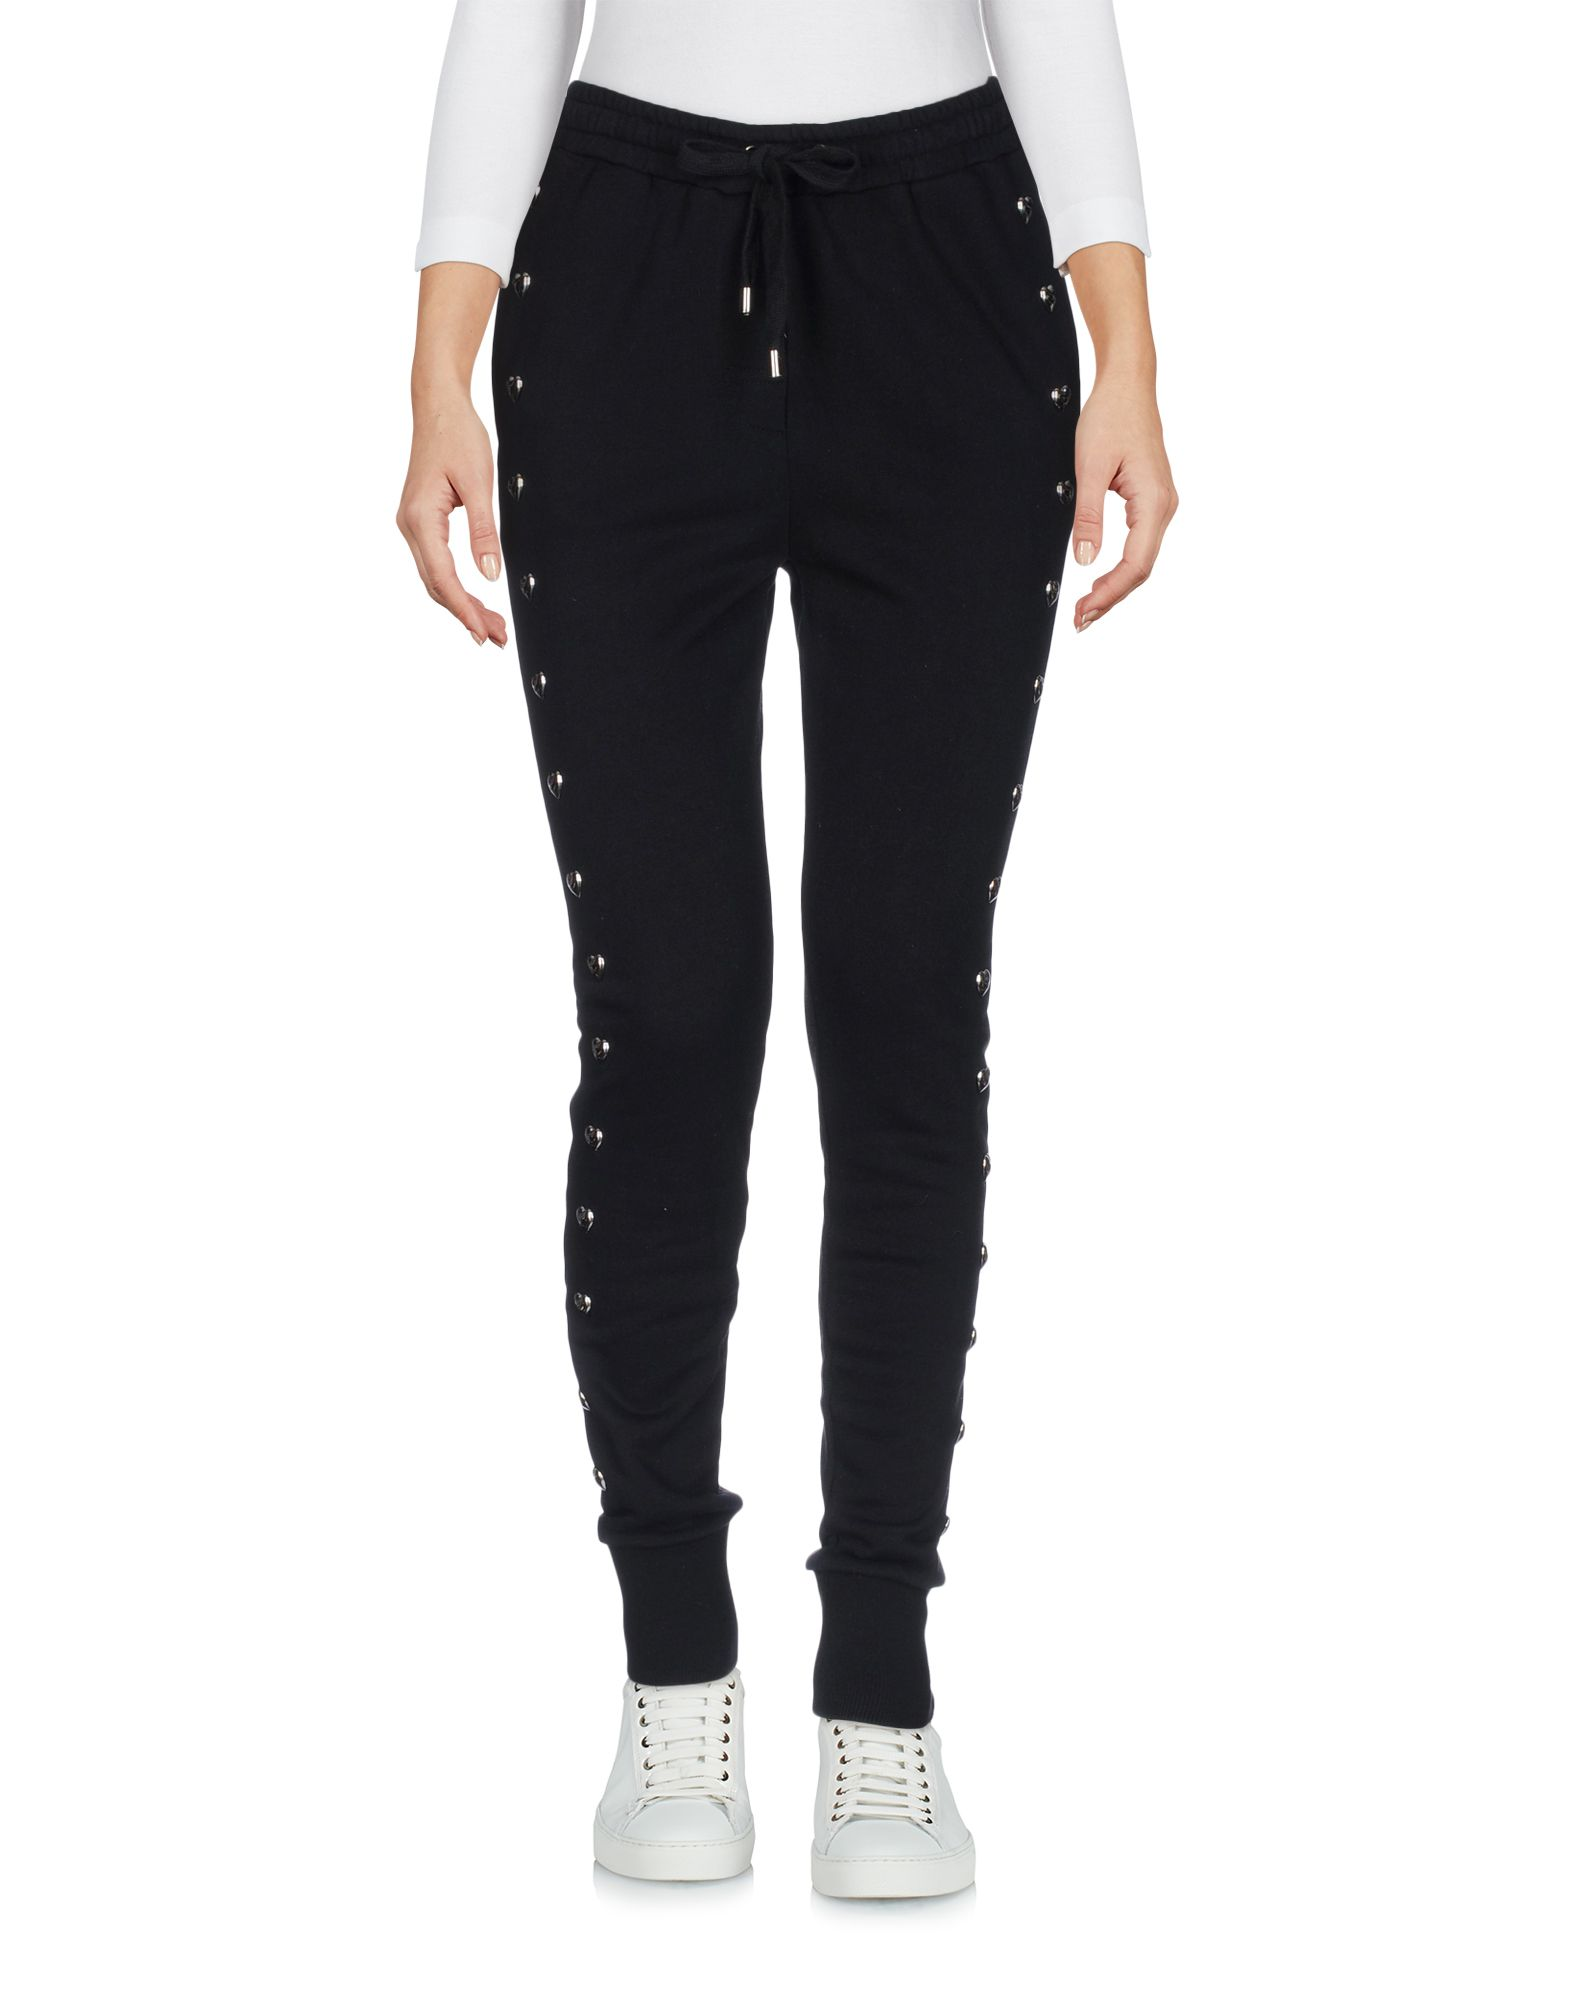 ZOE KARSSEN Casual pants